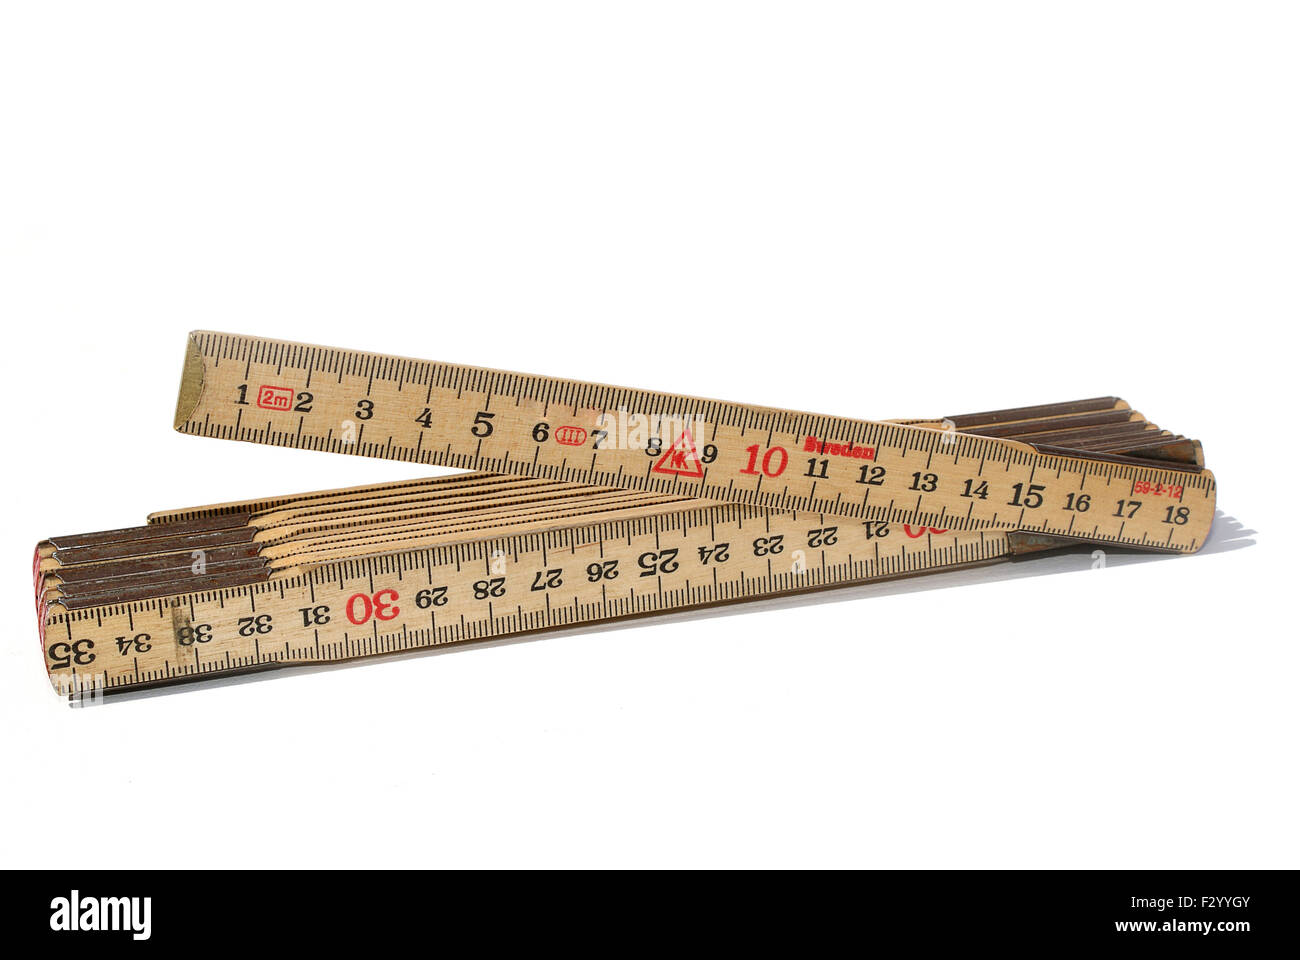 Carpenters meter - Stock Image